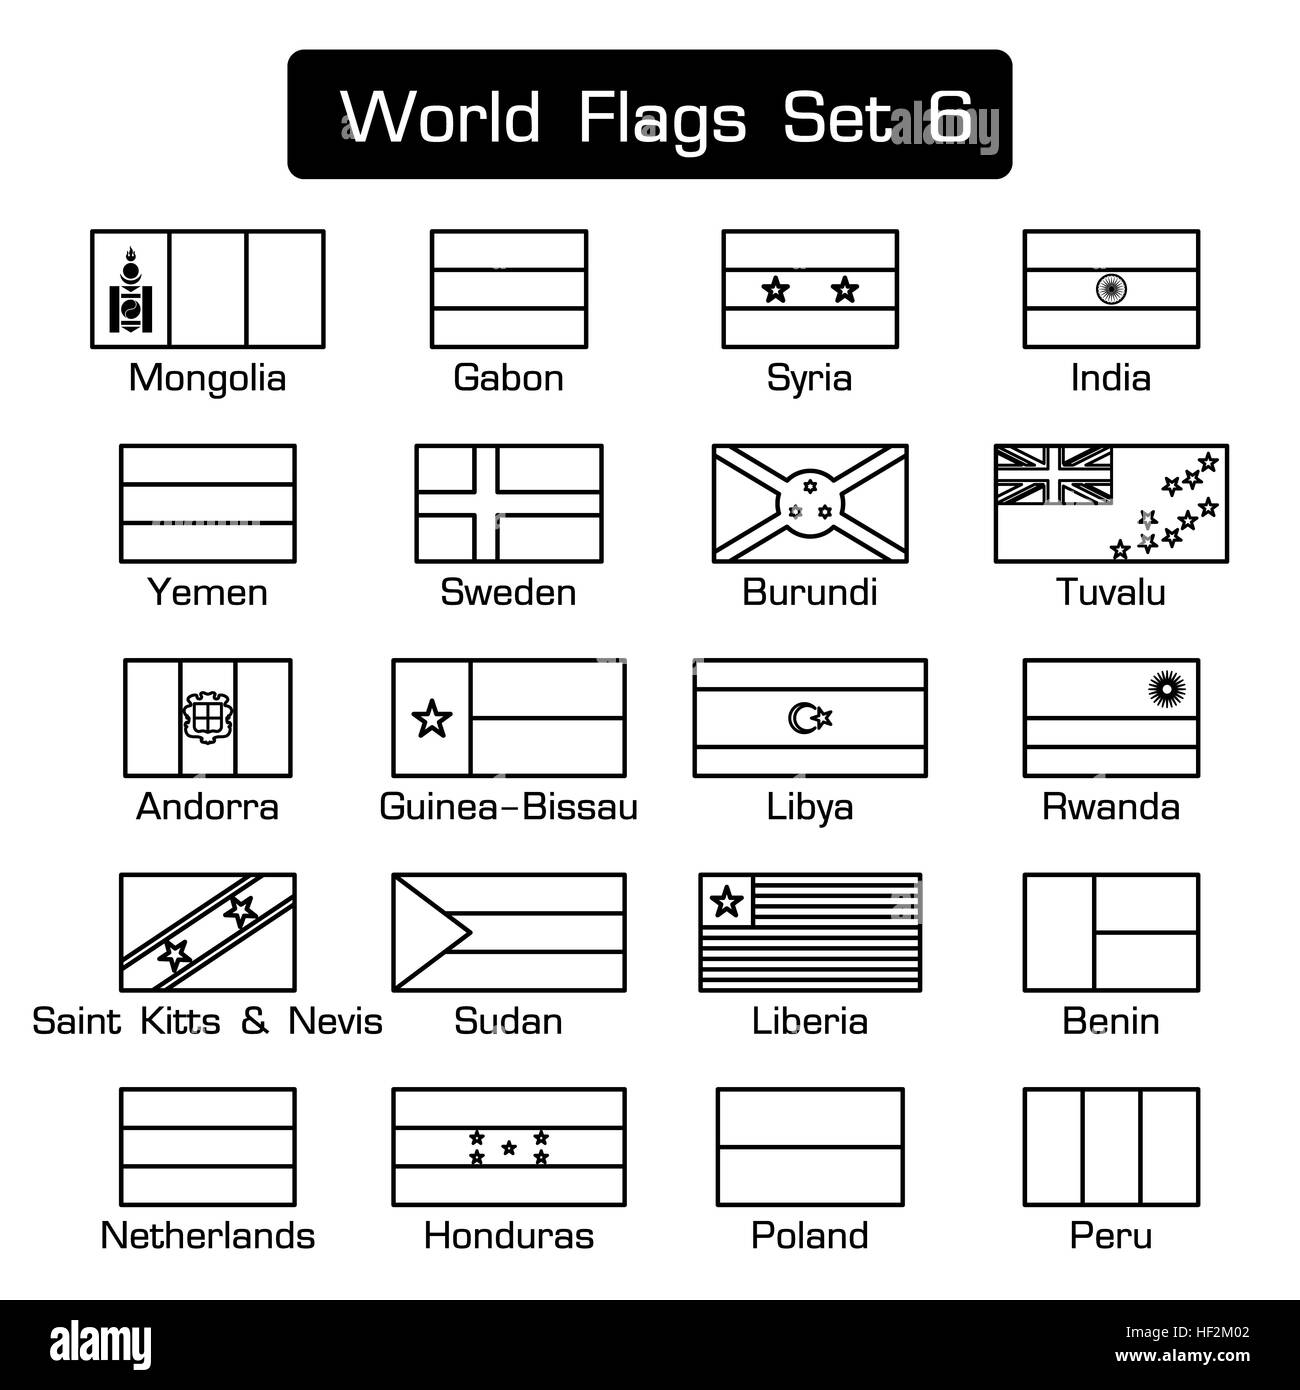 world flags set 6 simple style and flat design thick